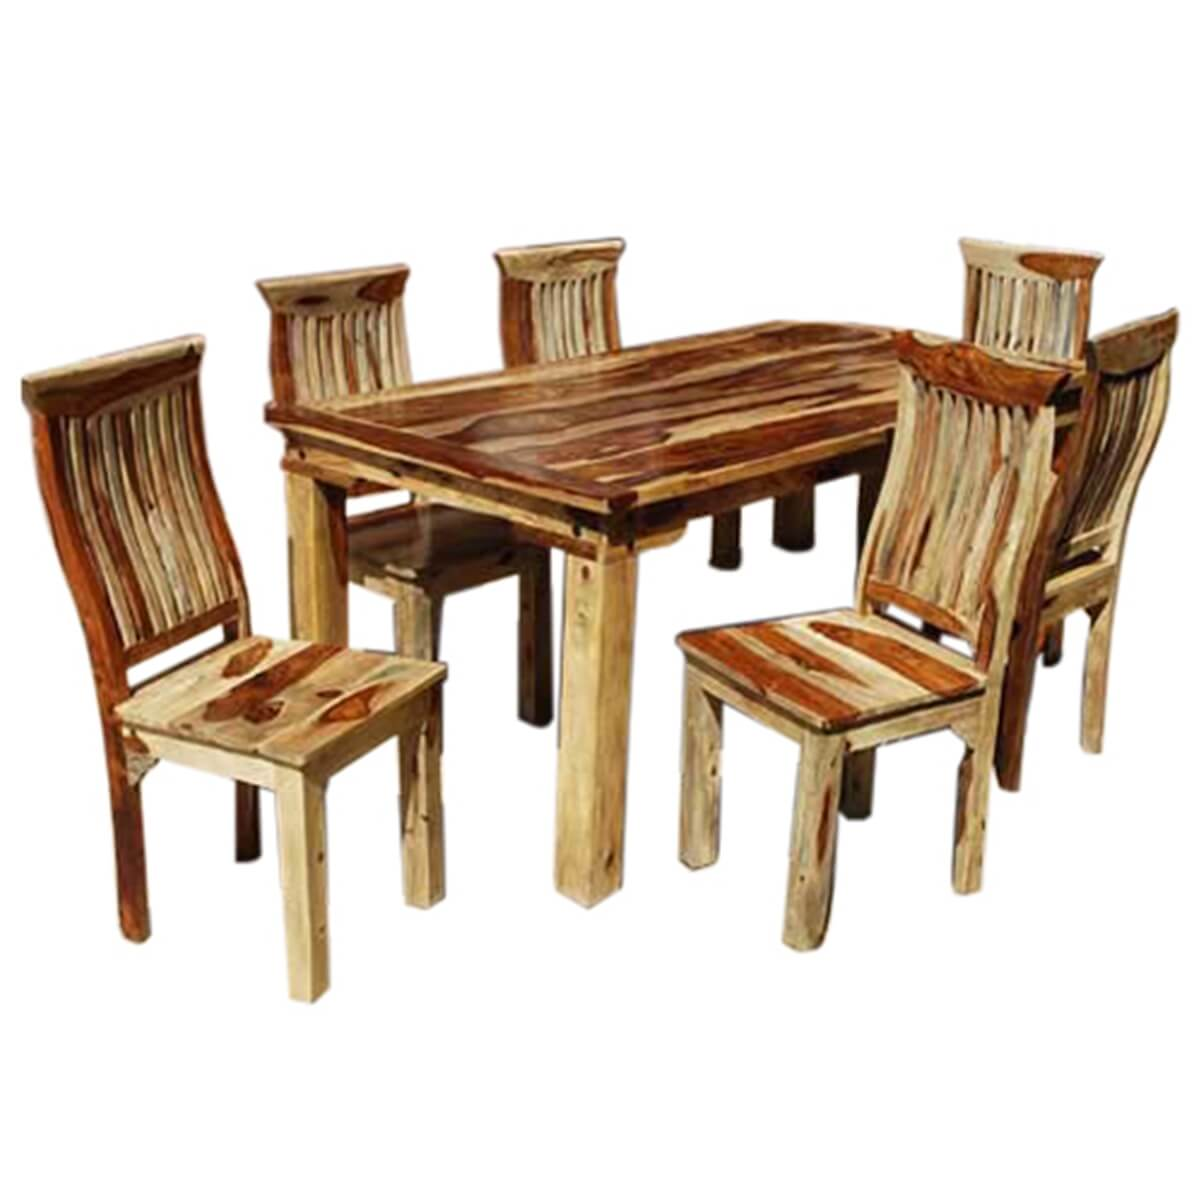 7 piece formal dining room kitchen table chair set rustic for Kitchen table set 7 piece